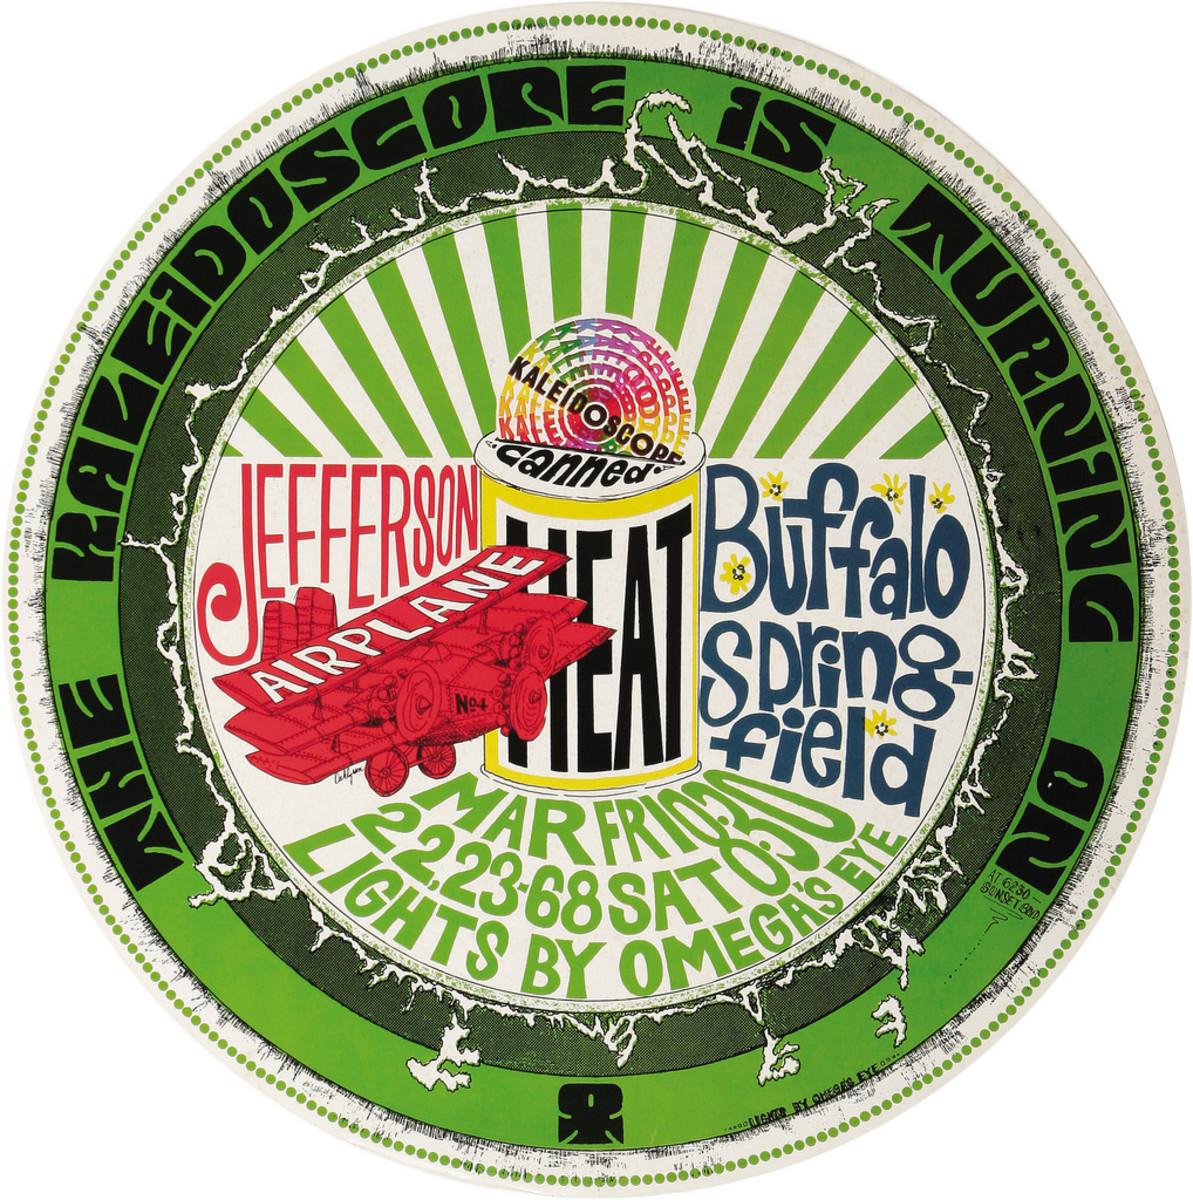 Jefferson Airplane, Canned Heat, Buffalo Springfield, Kaleidoscope Concert Poster (1968) Poster #4 Type 1 from Series with Art by Dick Dahlgren,